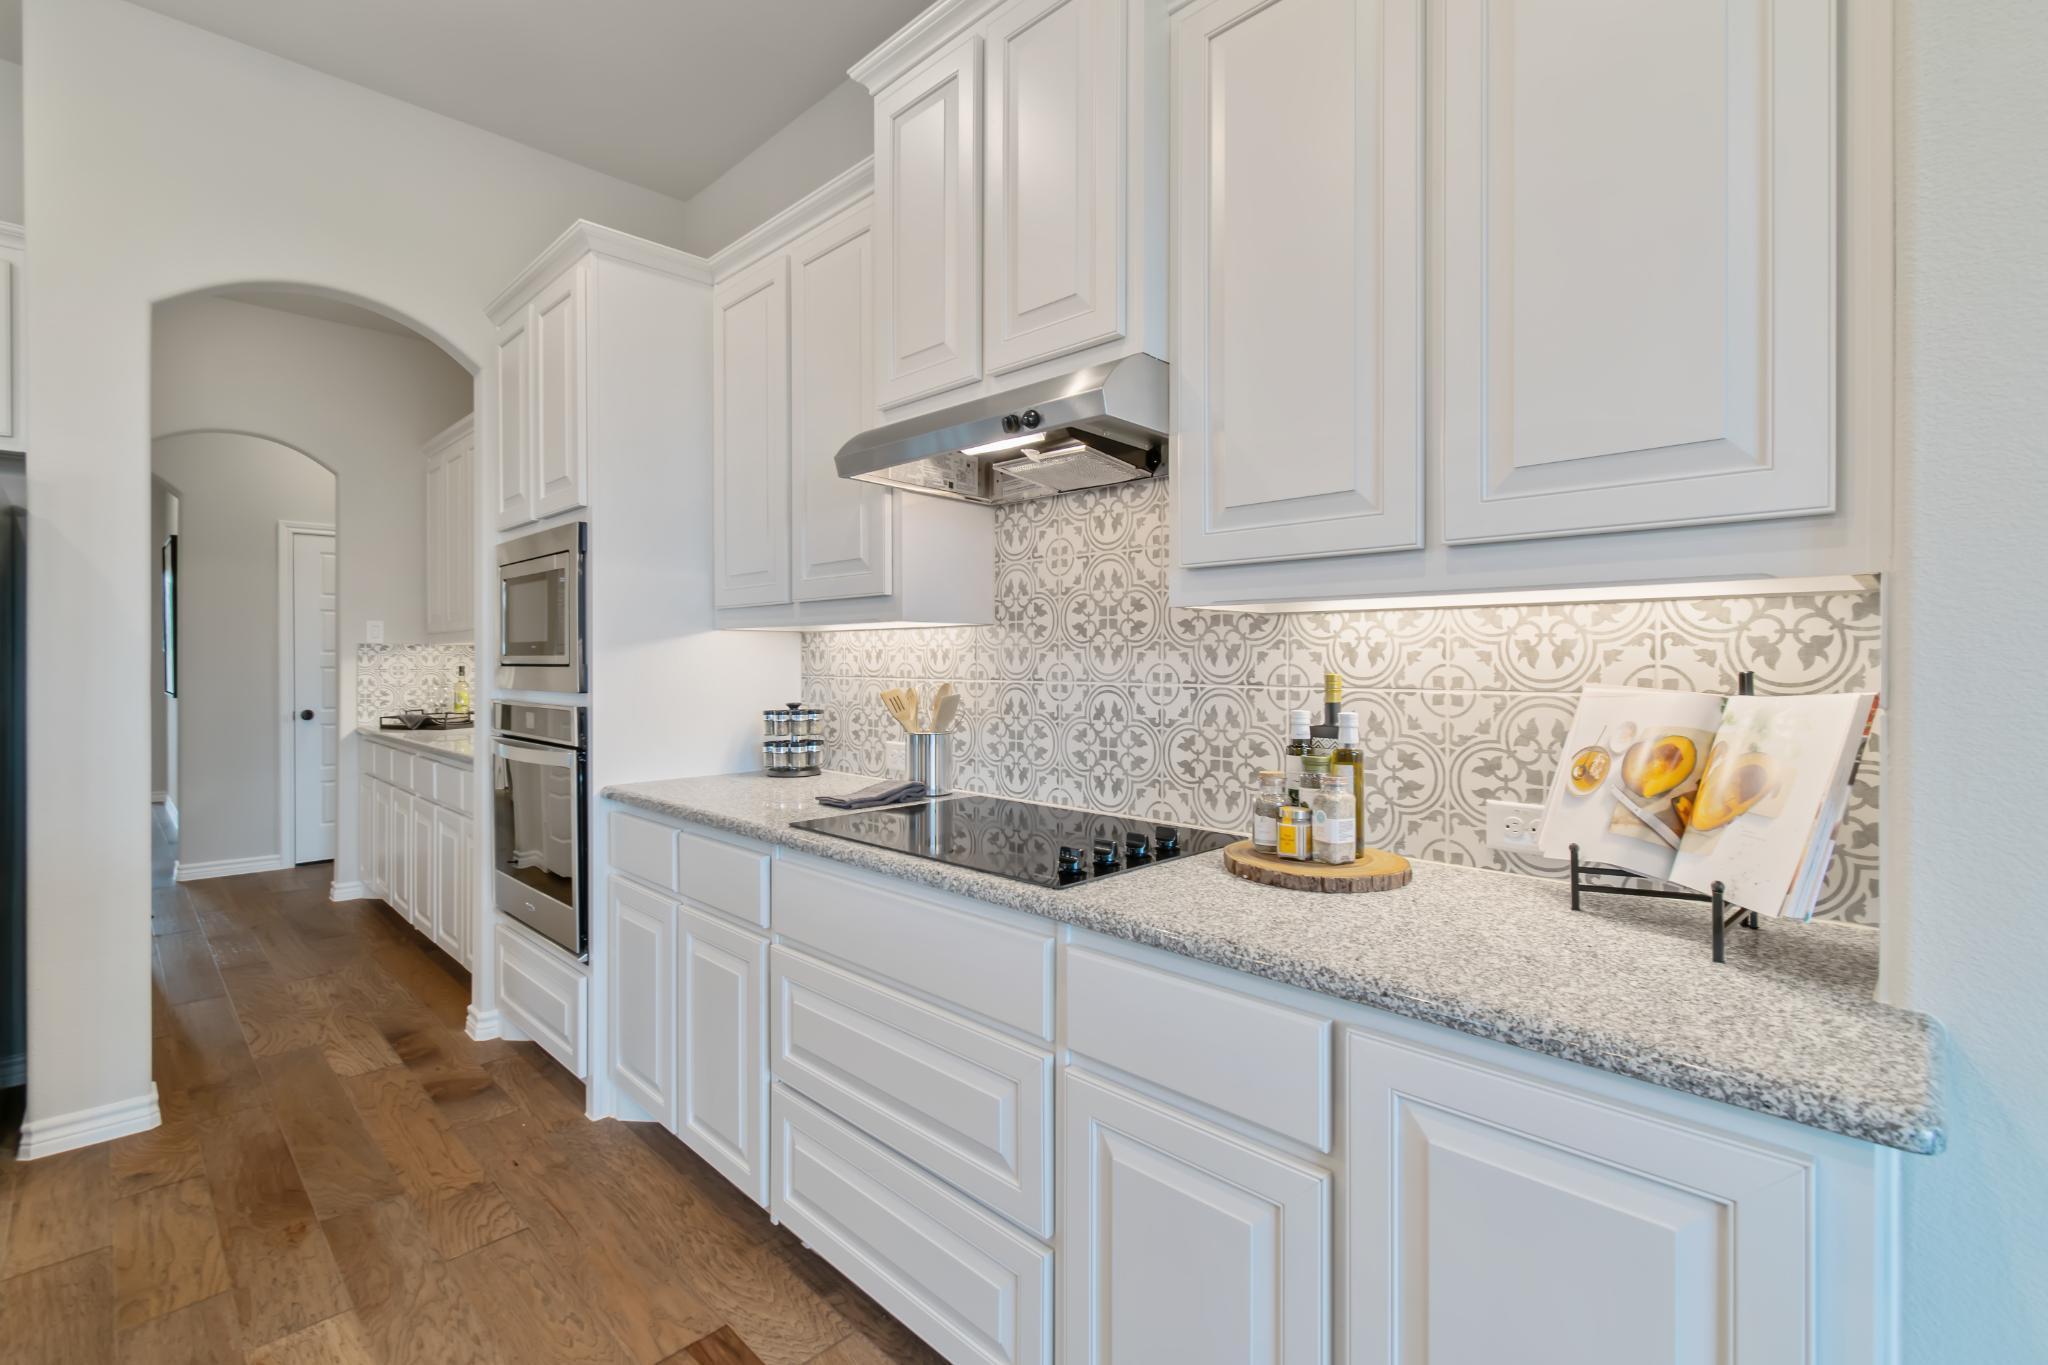 Kitchen featured in the 2434 By Antares Homes in Fort Worth, TX